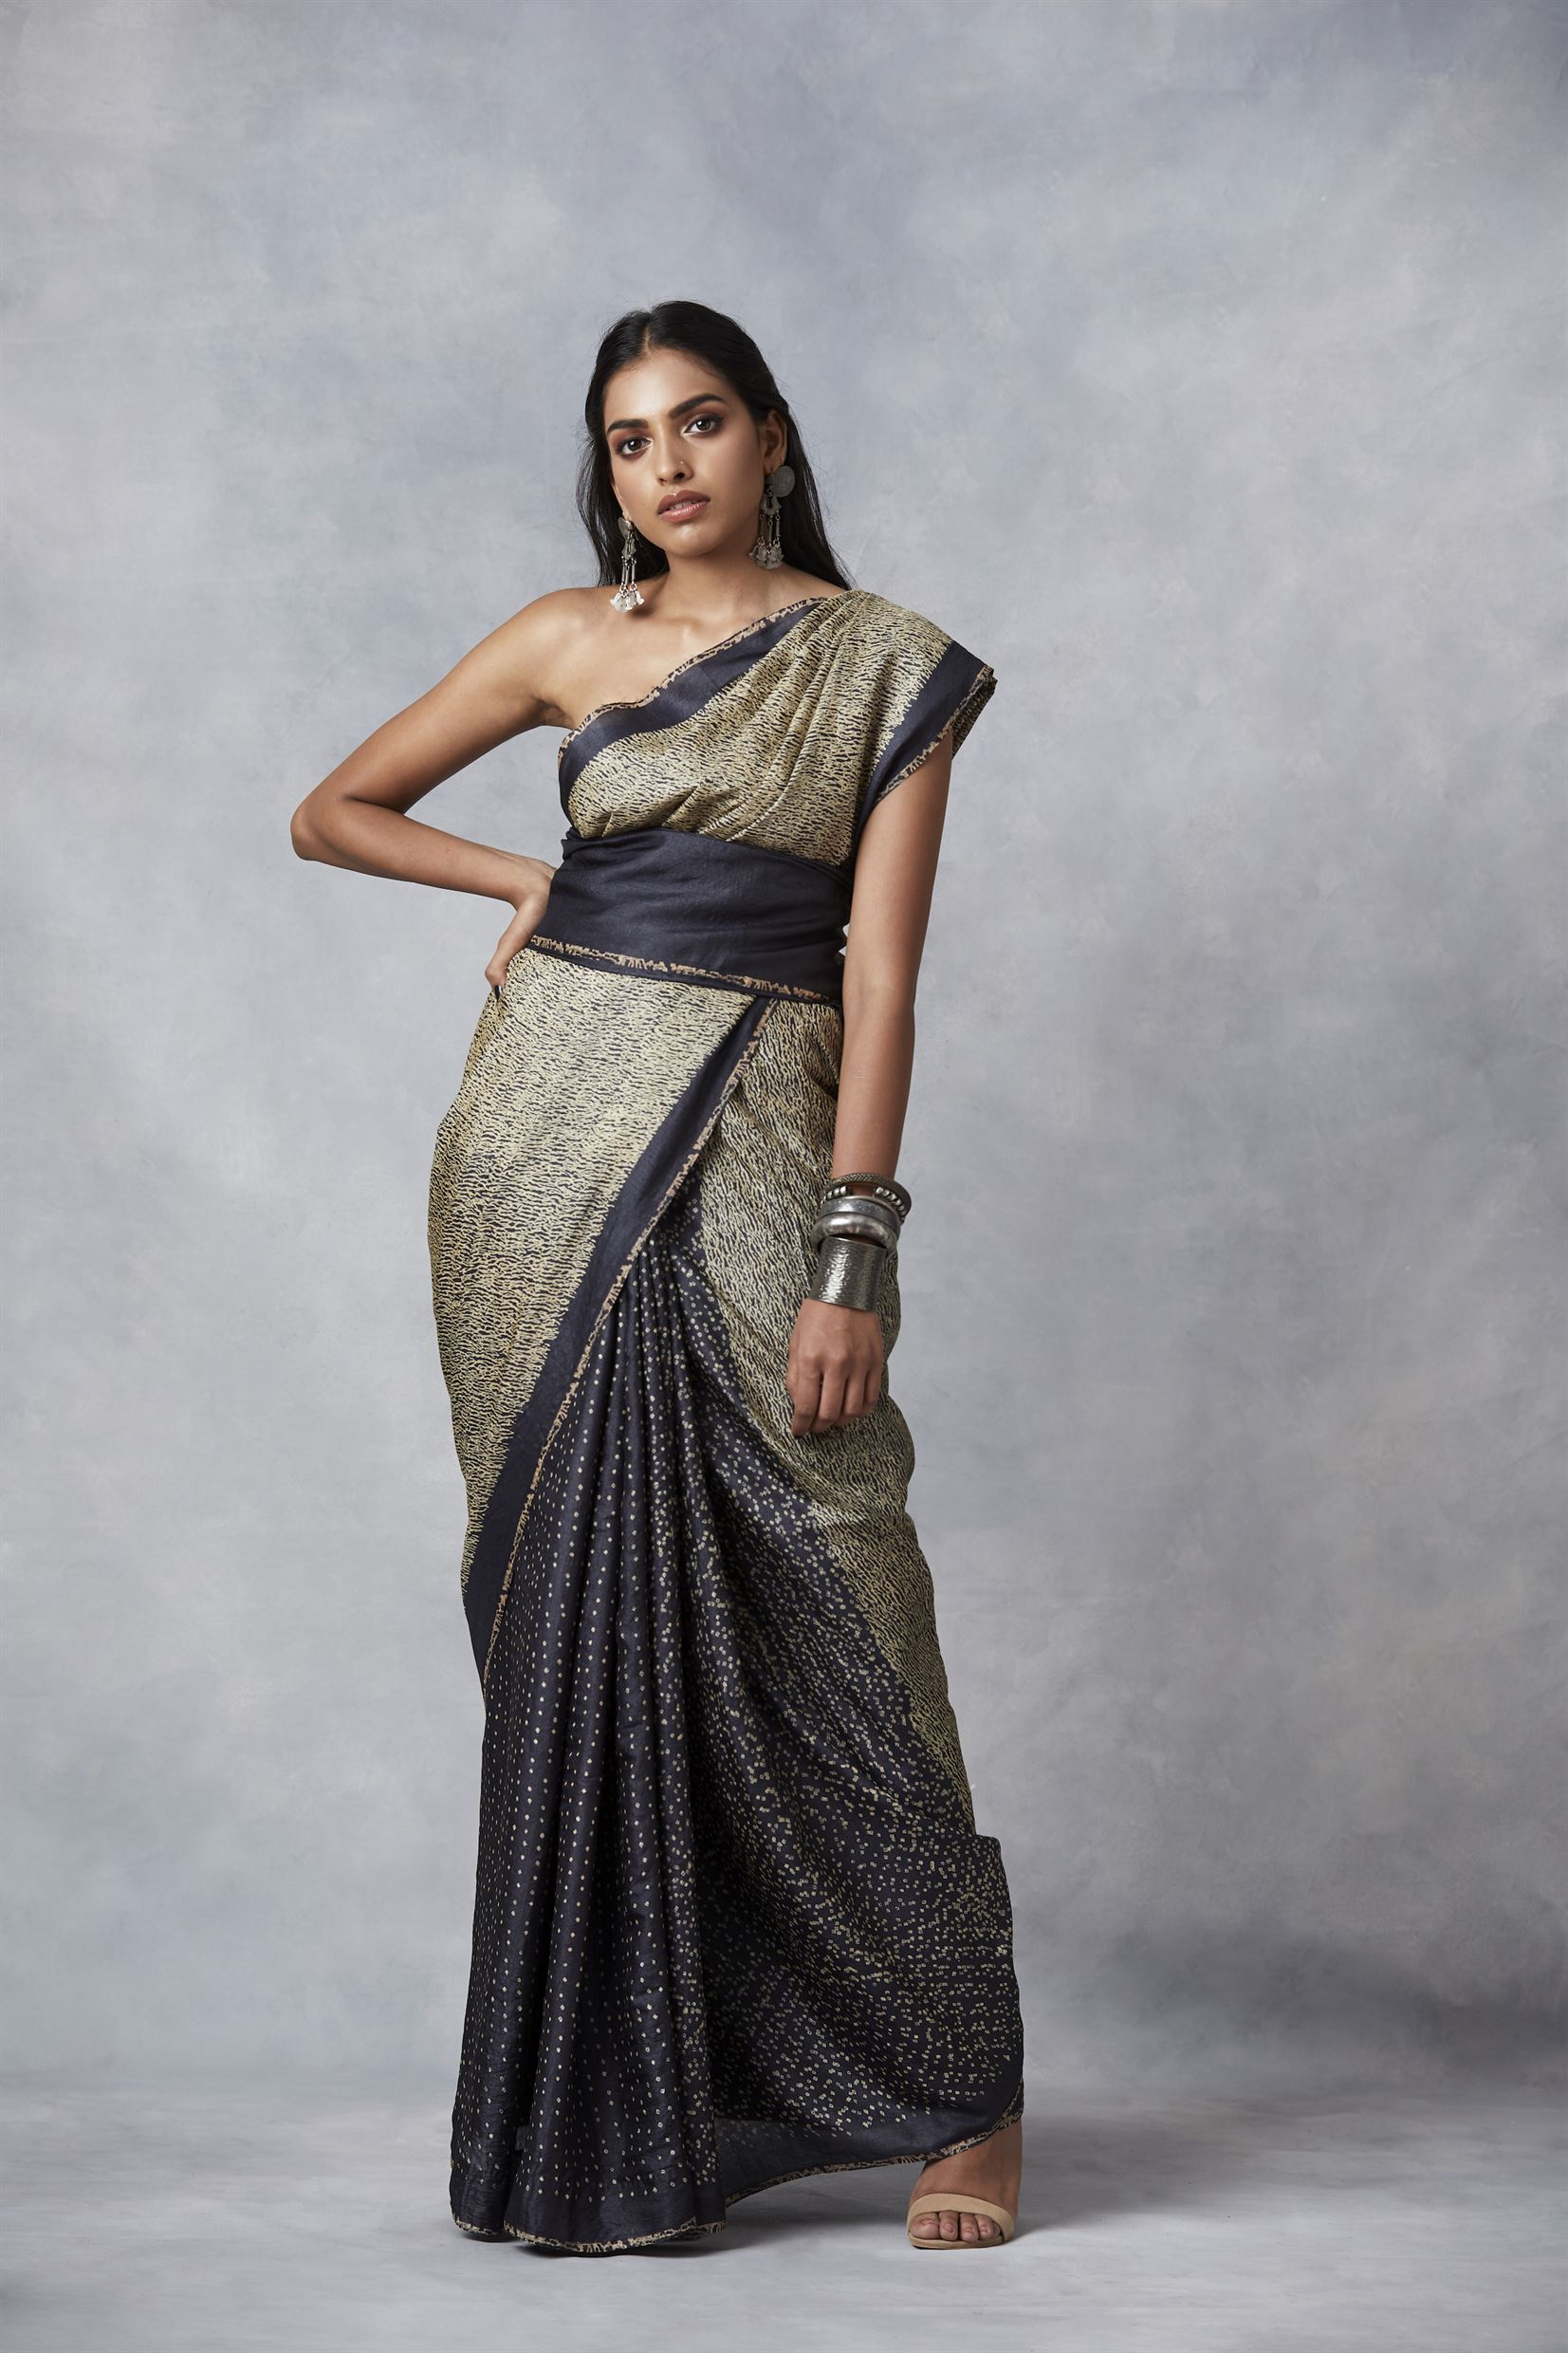 Bodhi saree designed by Mala and Pradeep Sinha, Truly sustainable small business in Vadodara , India